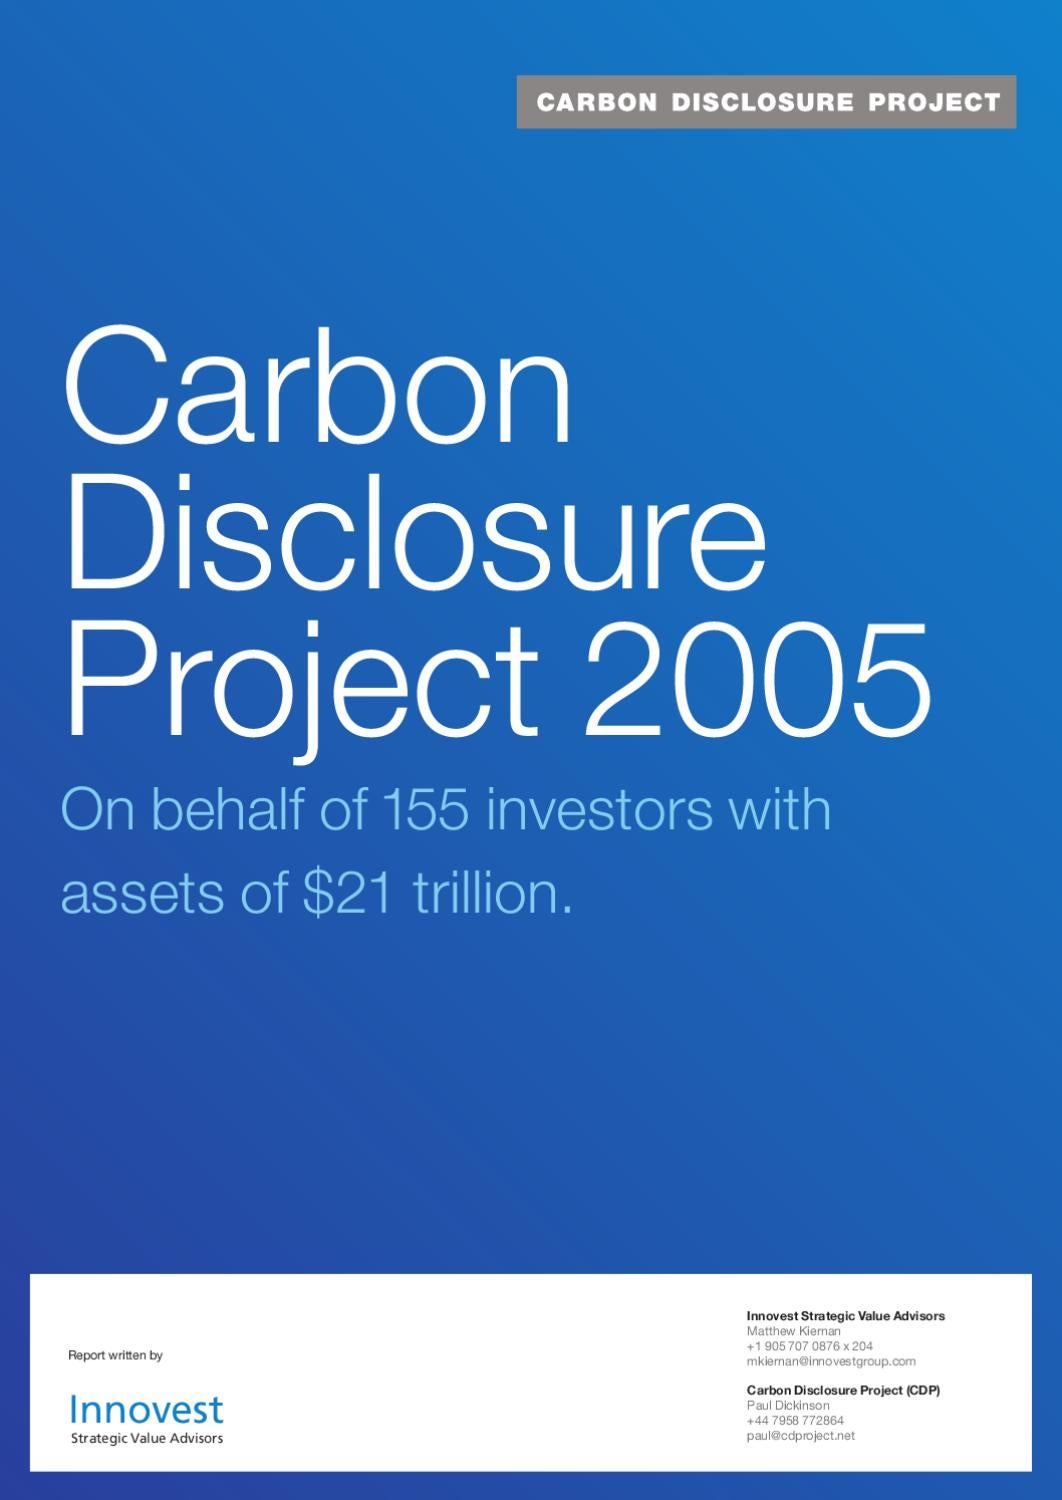 Cash Pool Hypovereinsbank Carbon Disclosure Project 2005 By Esmee Fairbairn Foundation Issuu